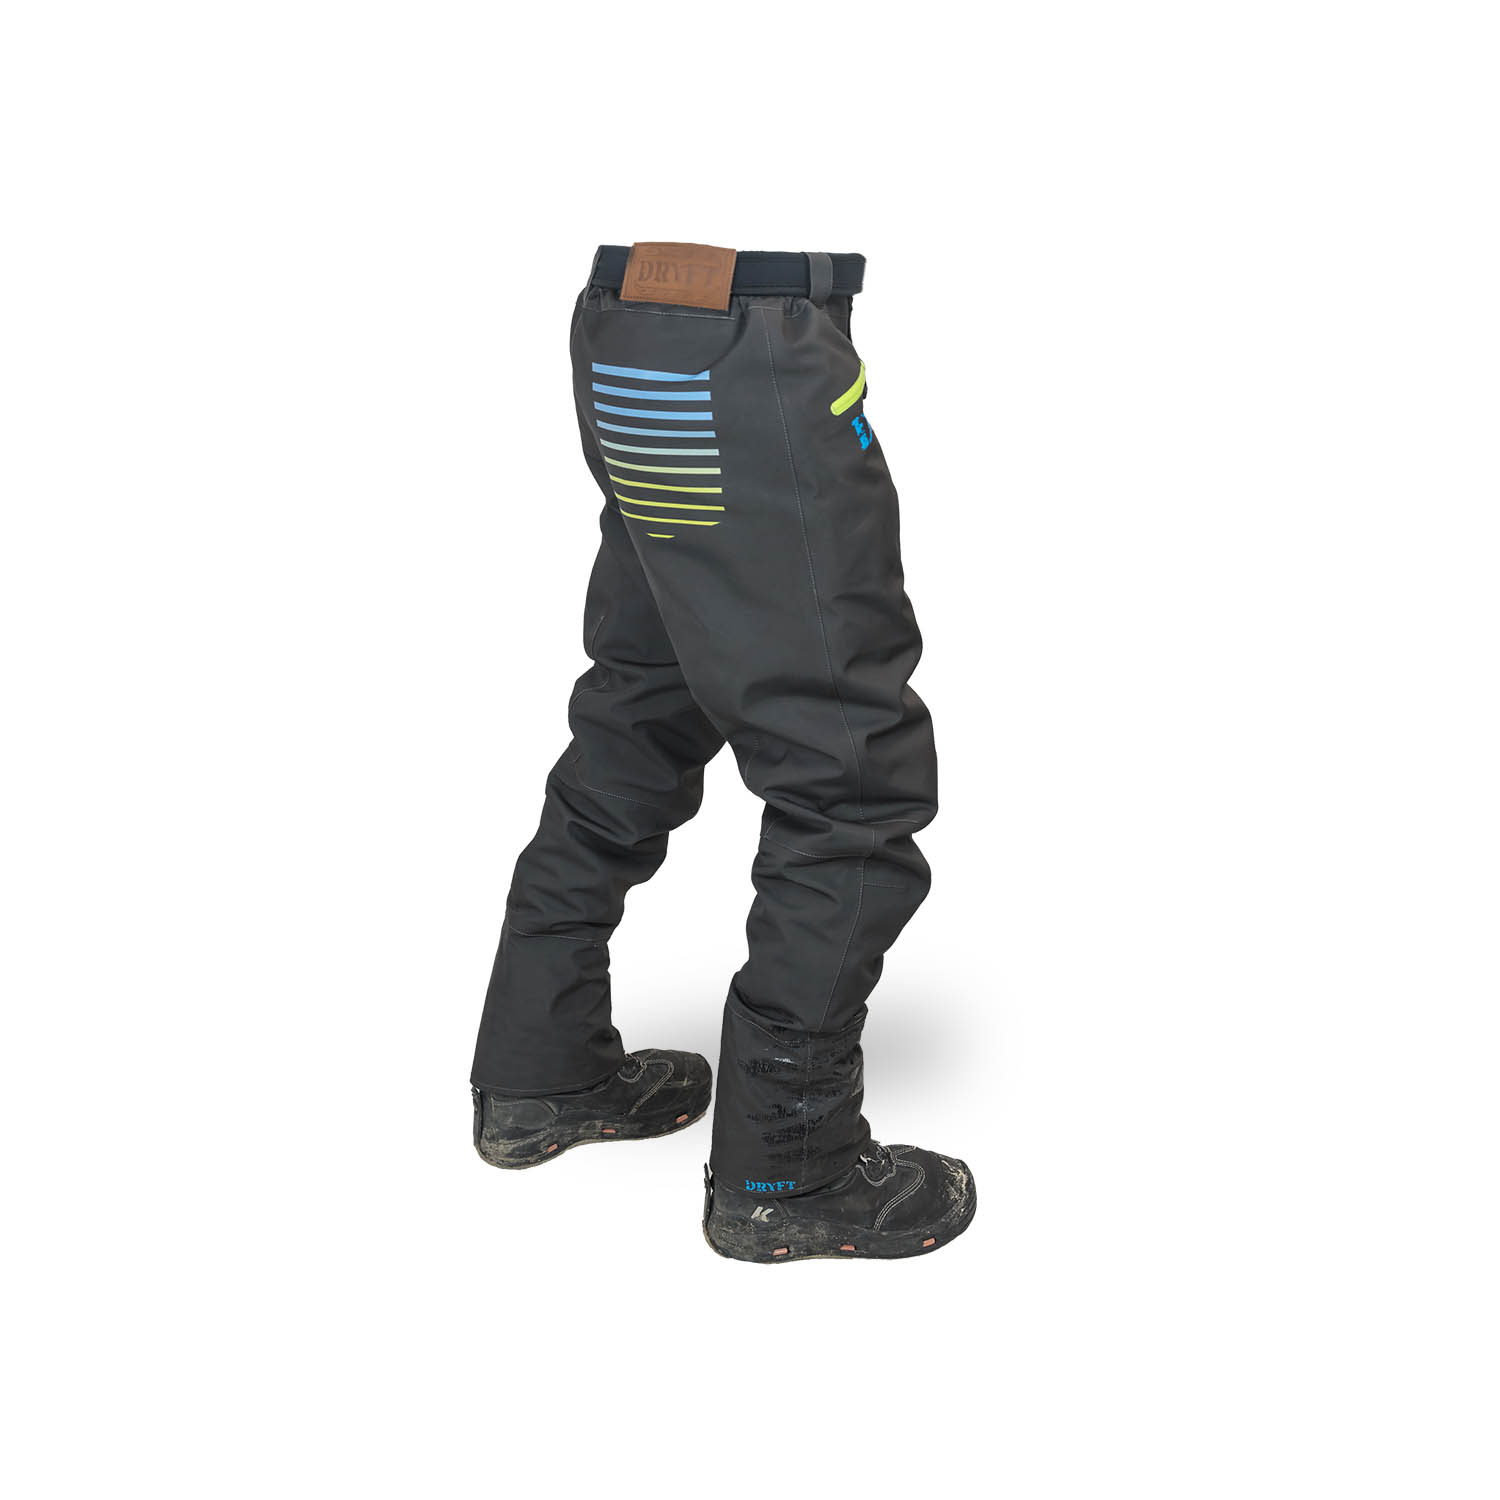 Session wading pants dryft fishing waders for Fly fishing waders reviews